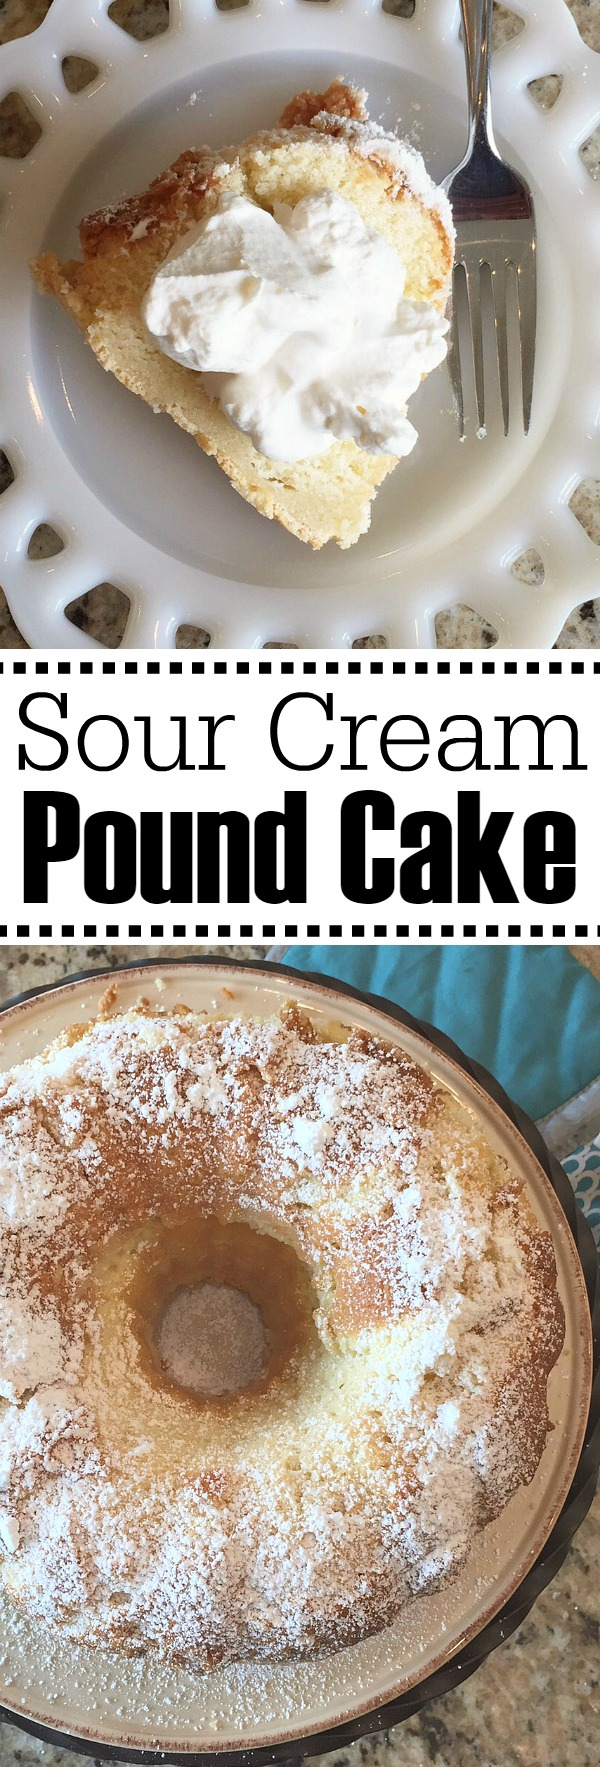 Delicious sour cream pound cake recipe with homemade whipped cream. Must try!